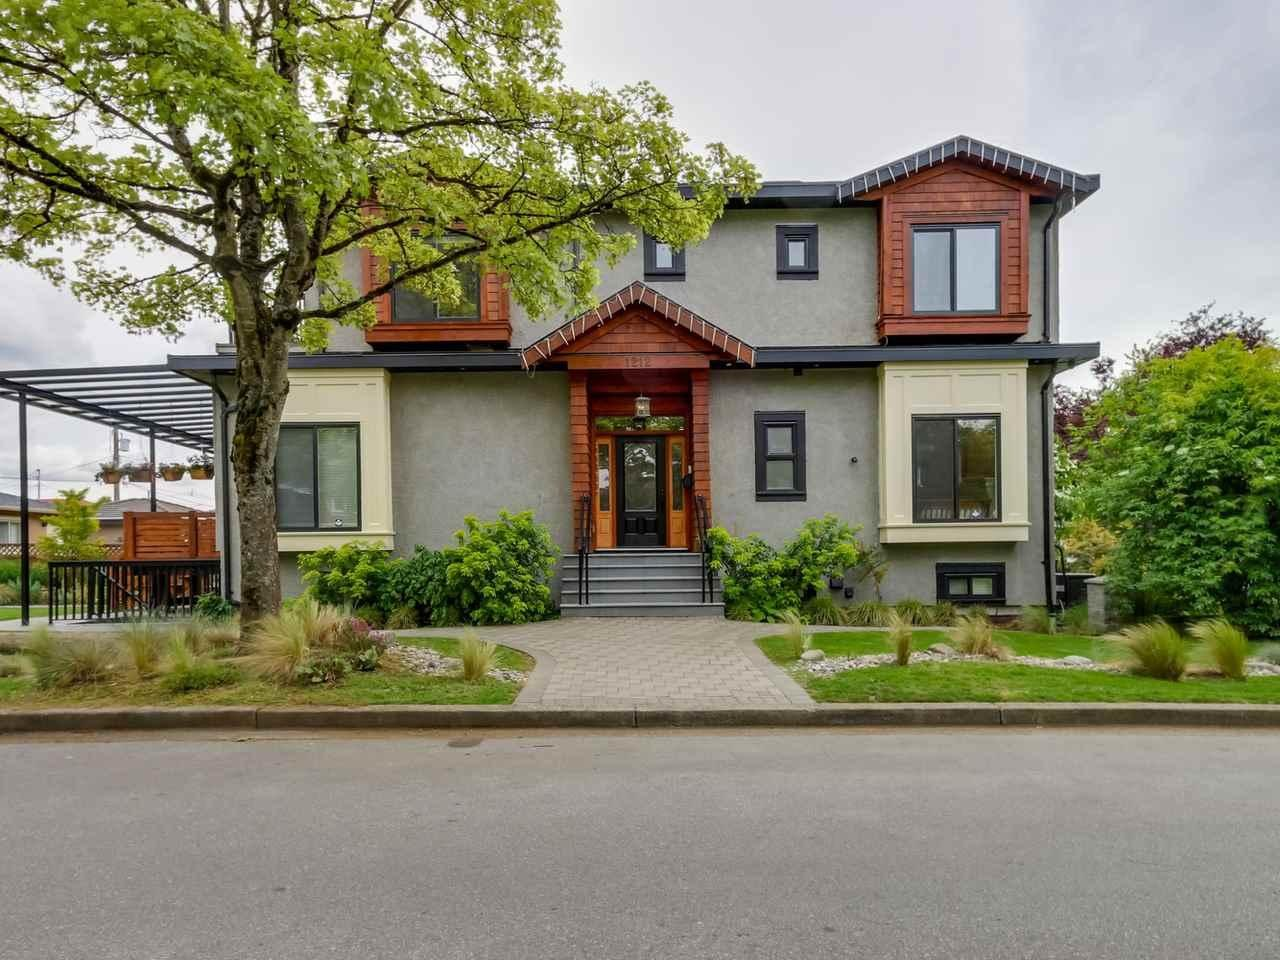 R2088411 - 1212 E 55TH AVENUE, South Vancouver, Vancouver, BC - House/Single Family